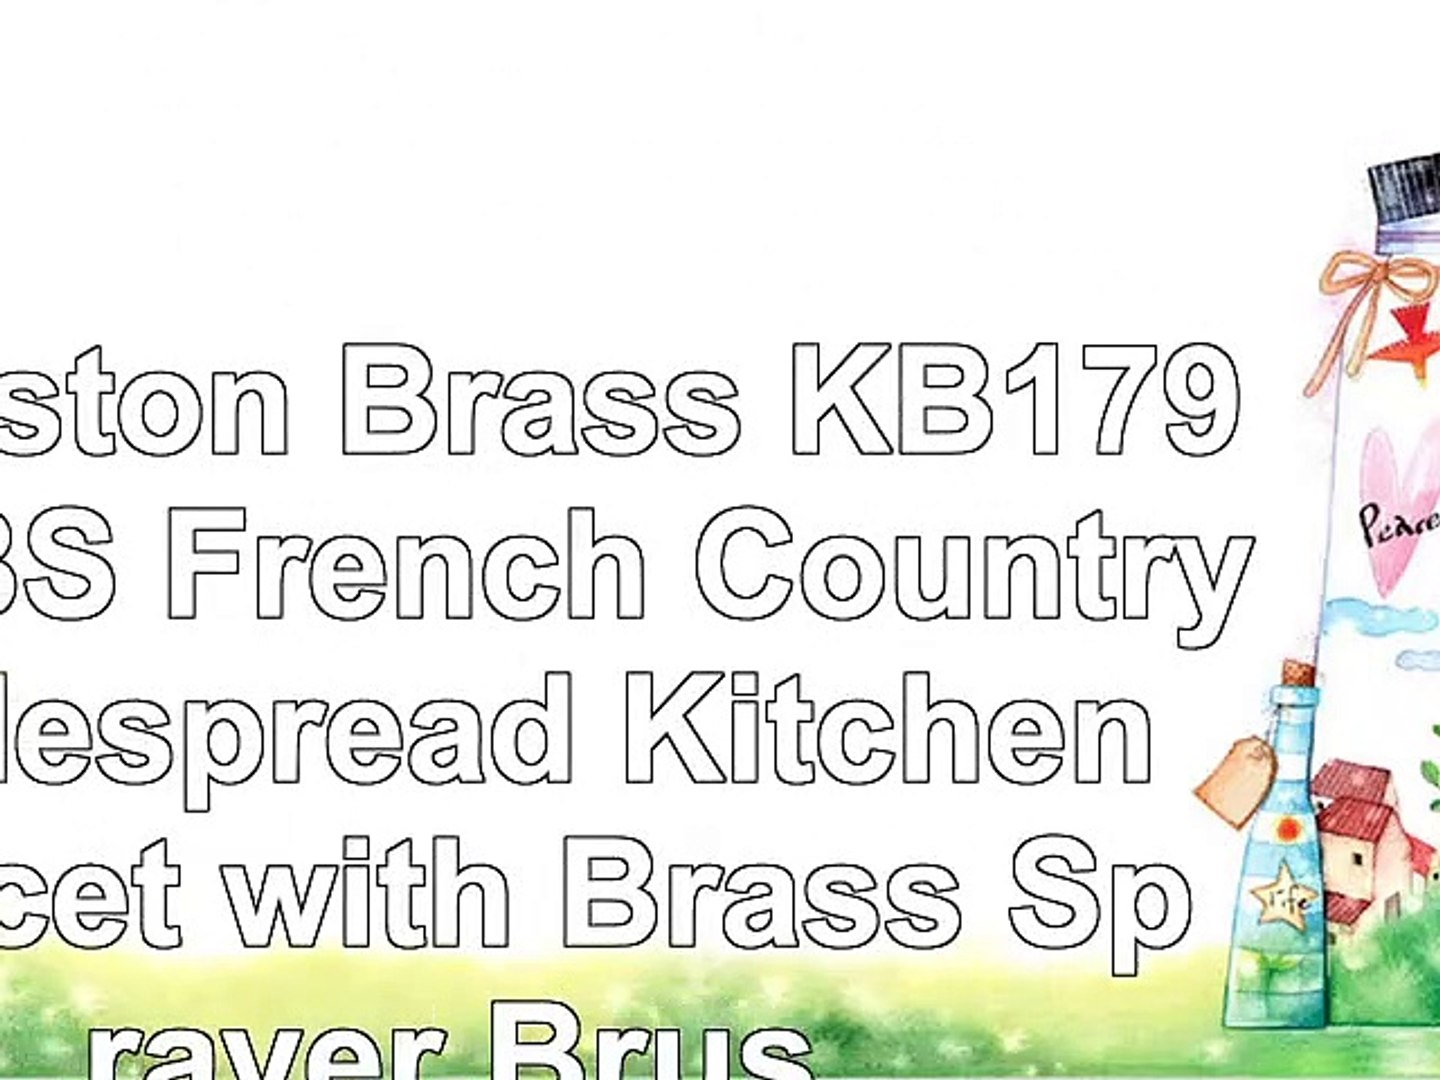 Kingston Brass KB1798TXBS French Country Widespread Kitchen Faucet with Brass Sprayer